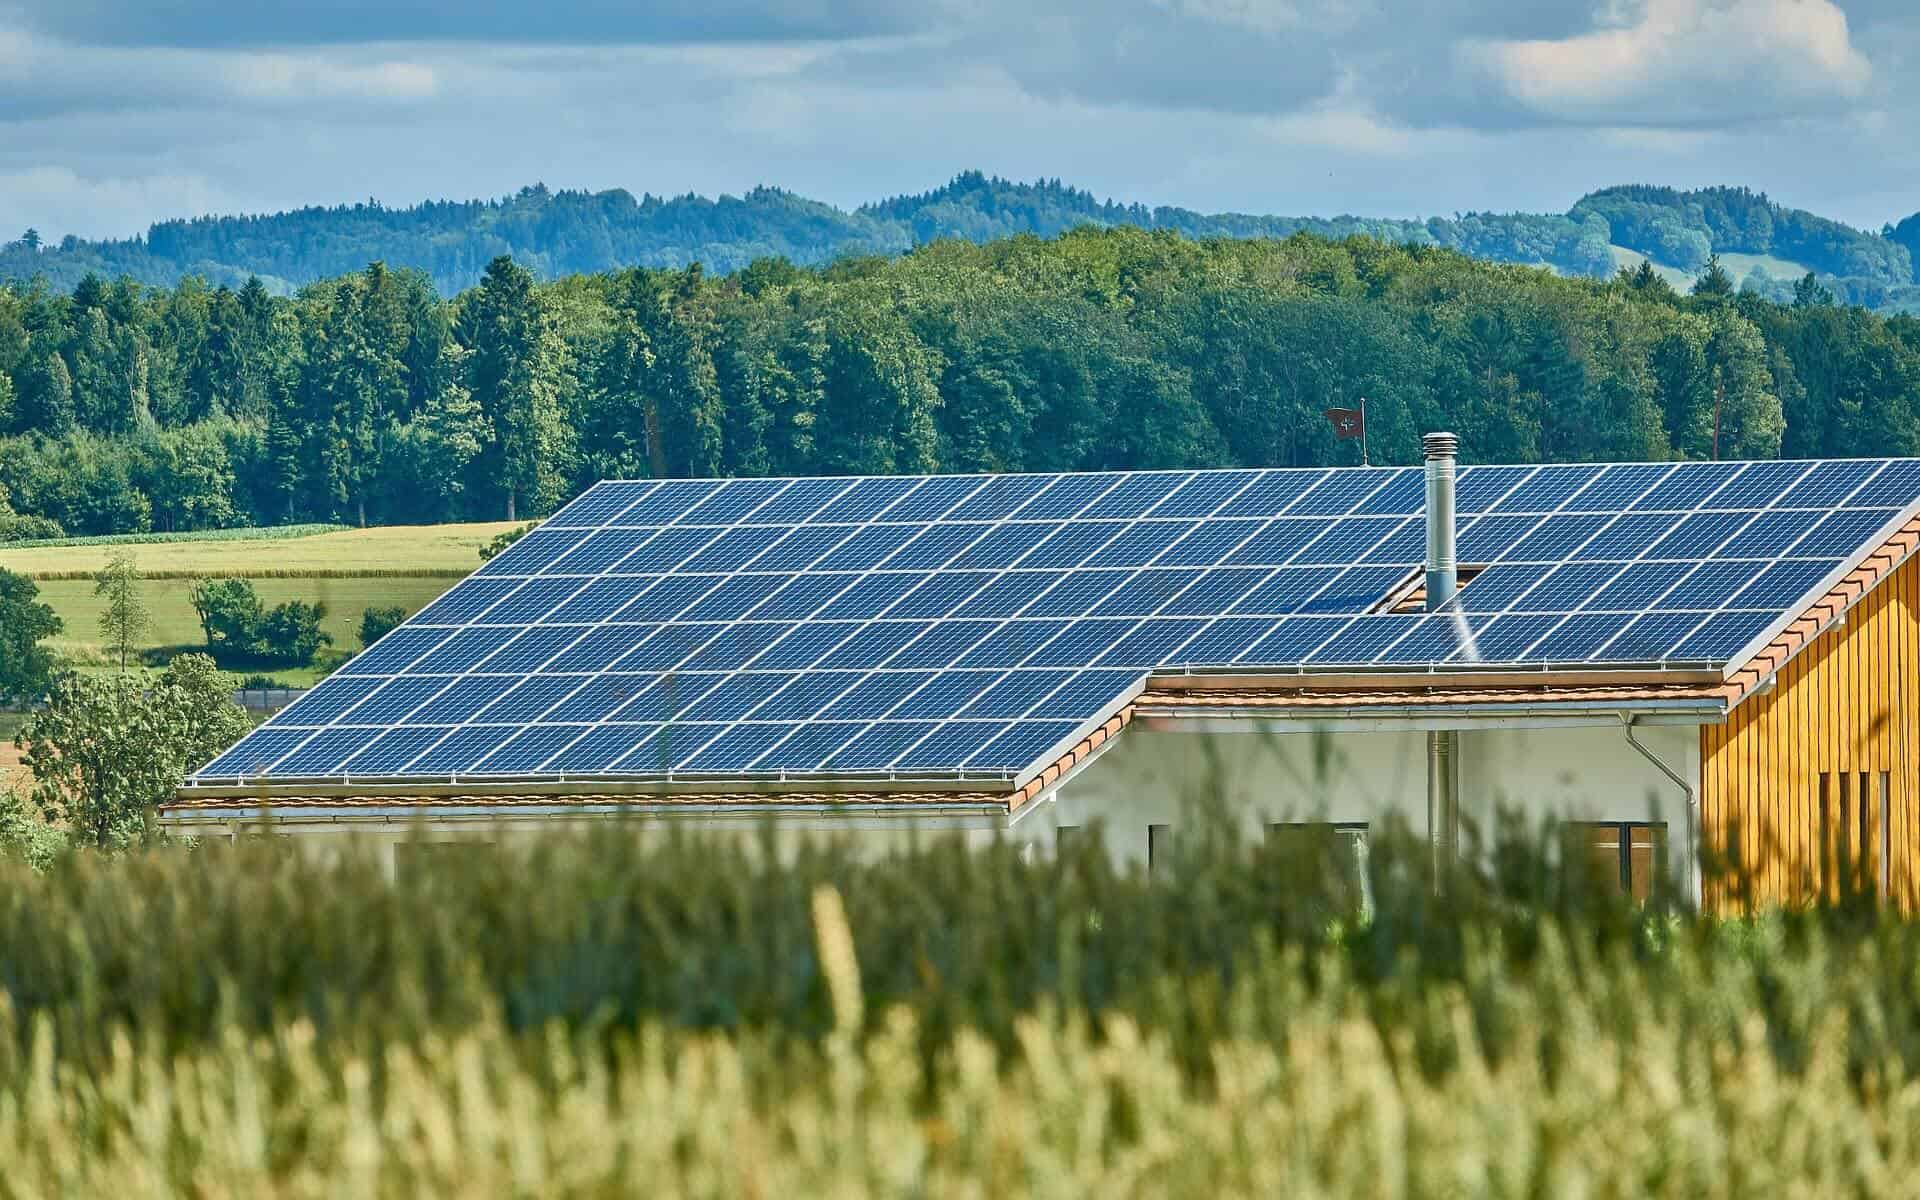 Us County Extends Regulations Requiring Bitcoin Miners To Use Green Energy